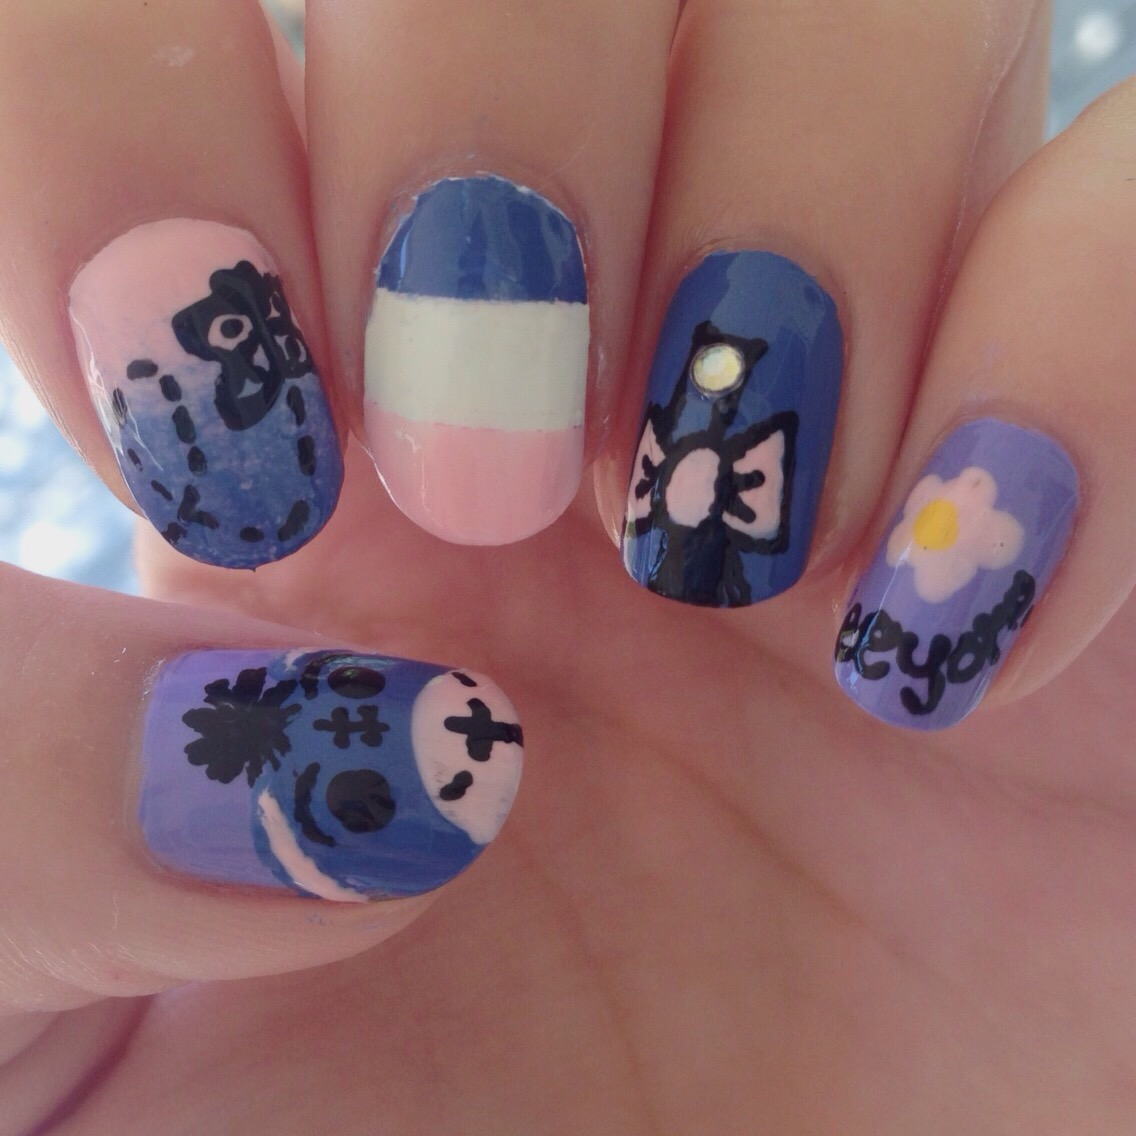 Nail Art By Katy Eeyore Nails From Winnie The Pooh